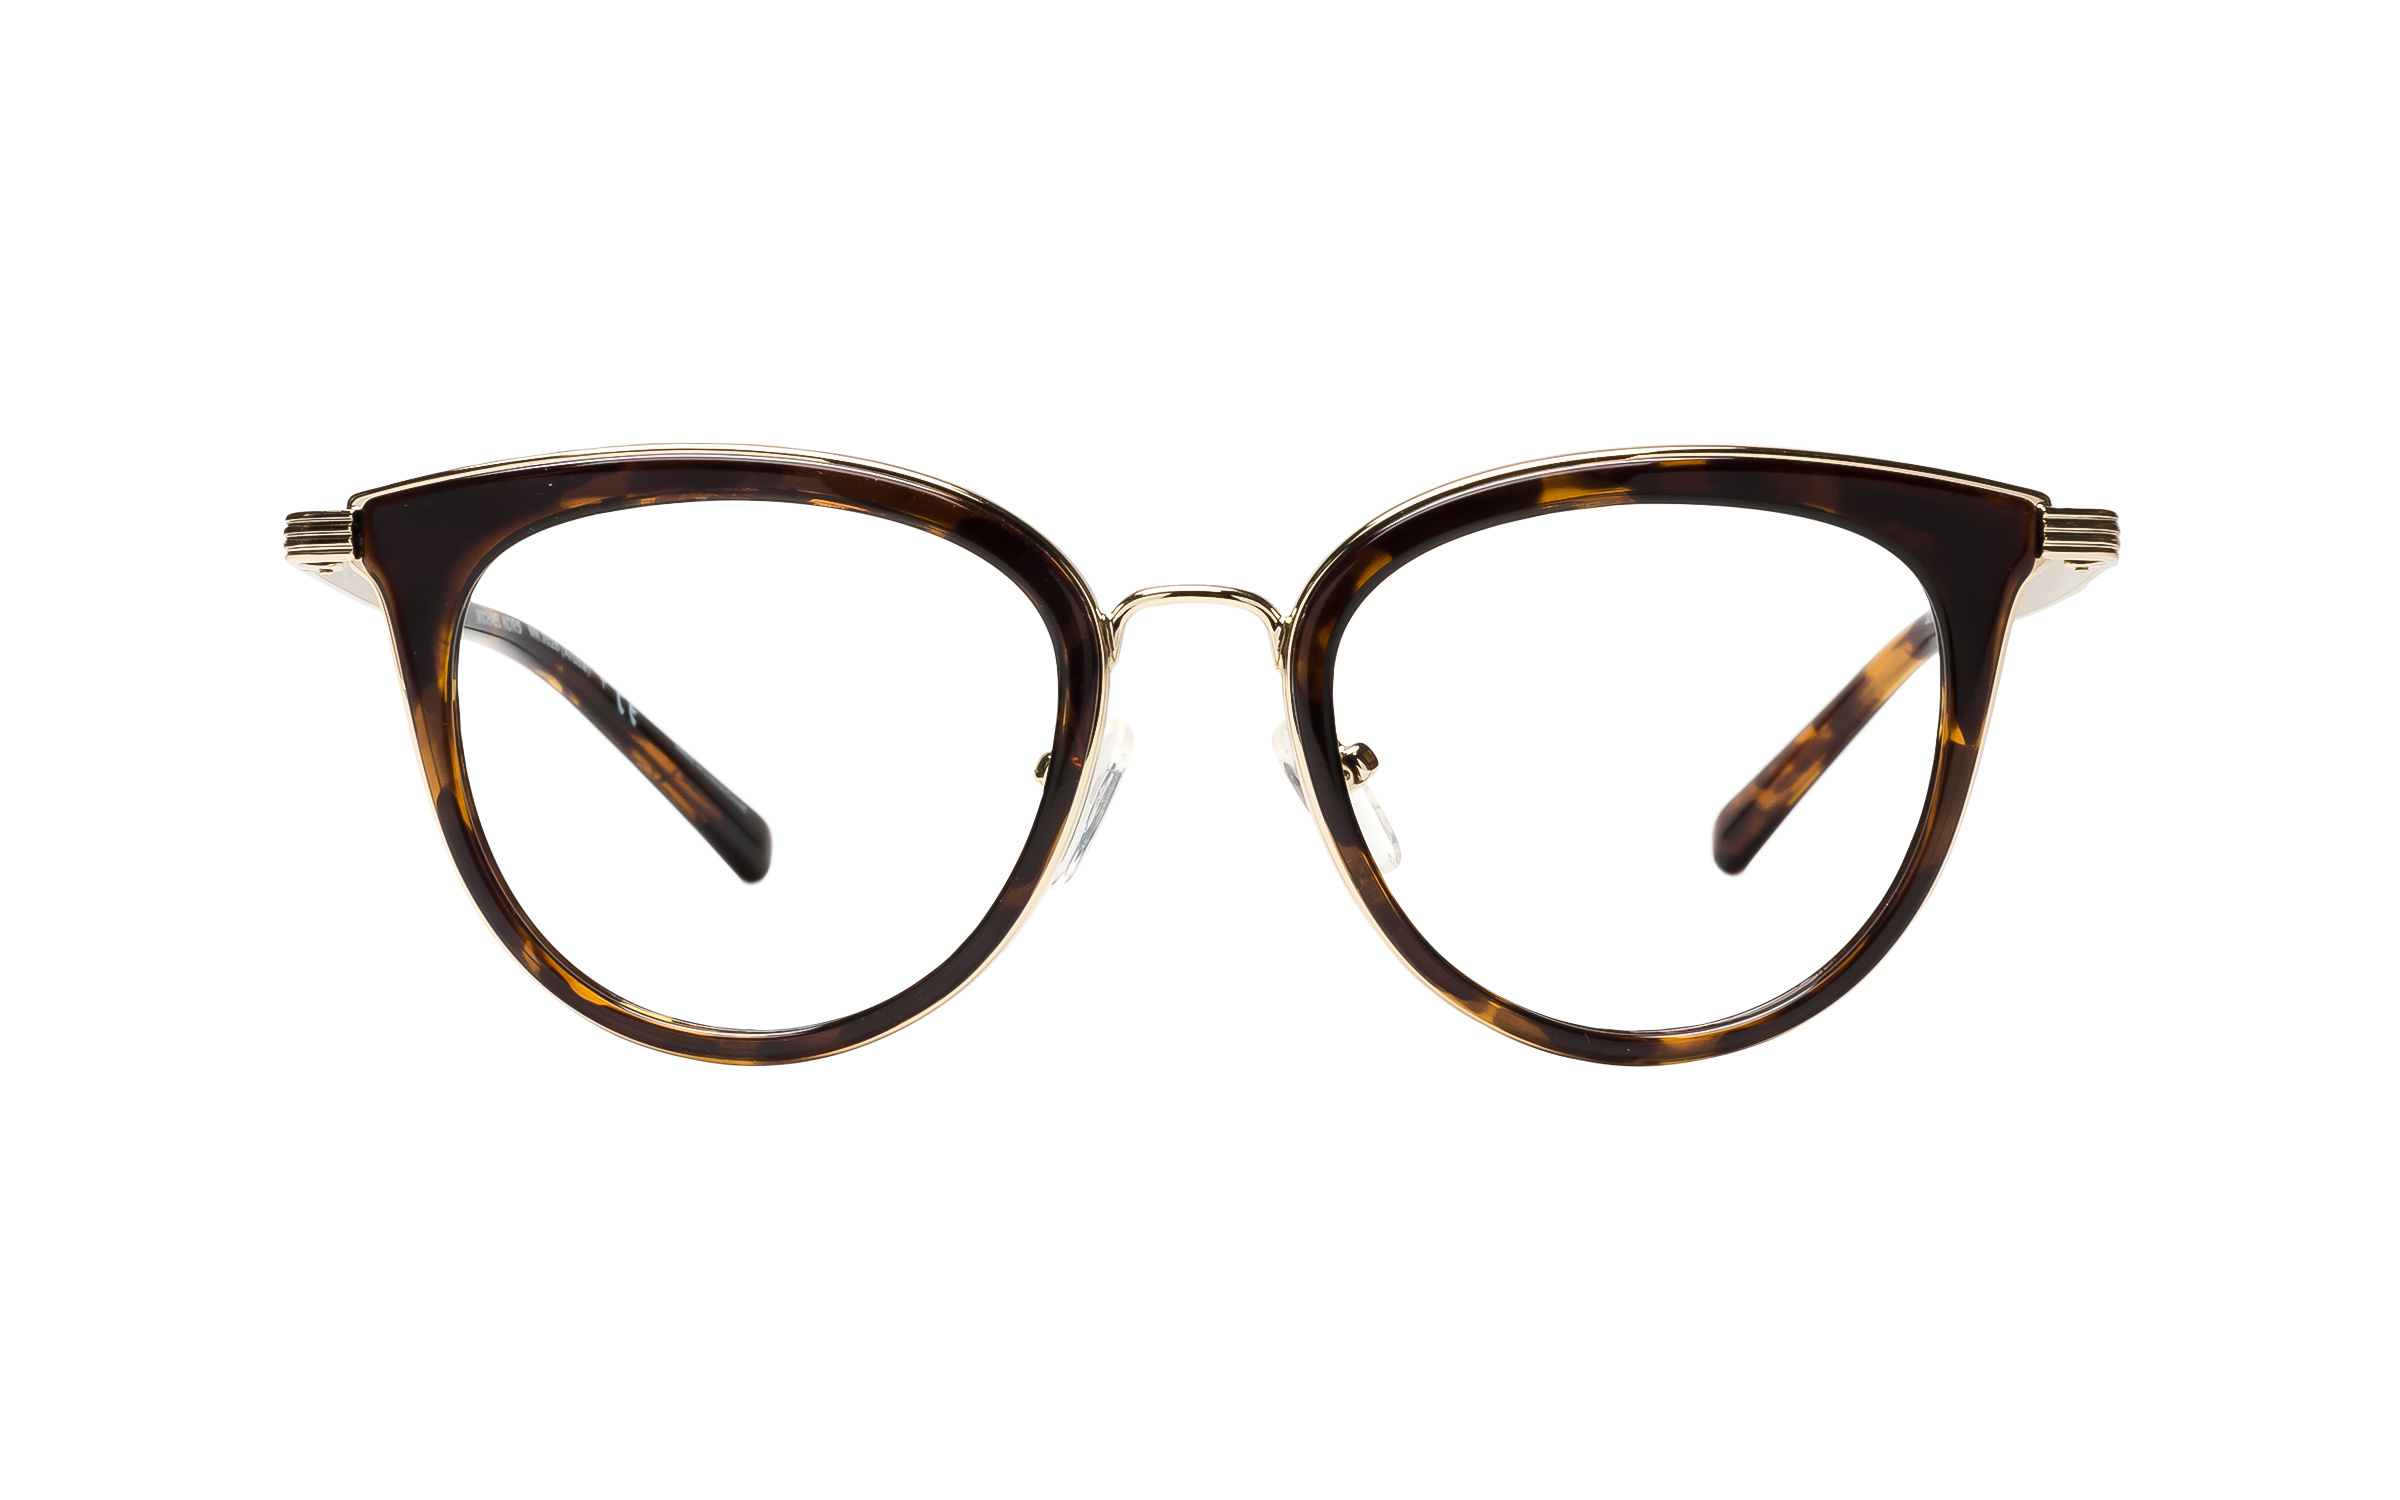 Michael Kors MK3026 3333 (50) Eyeglasses and Frame in Lite Tortoise/Brown/Gold | Plastic/Metal - Online